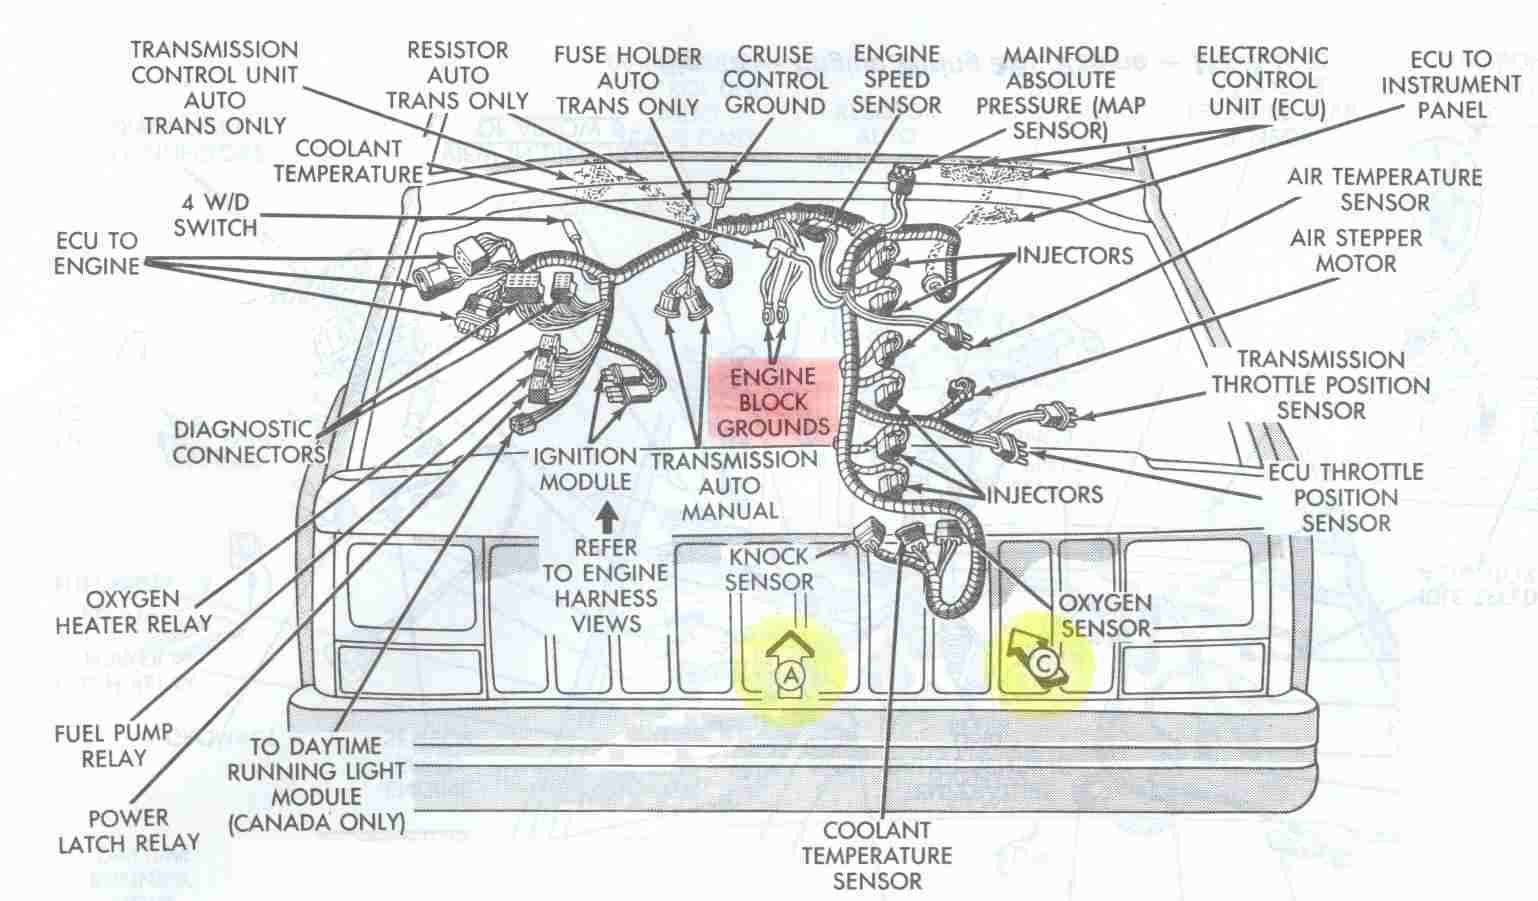 ab0134a7d9e021431187af597eb4aeca engine bay schematic showing major electrical ground points for wiring harness for jeep cherokee at love-stories.co